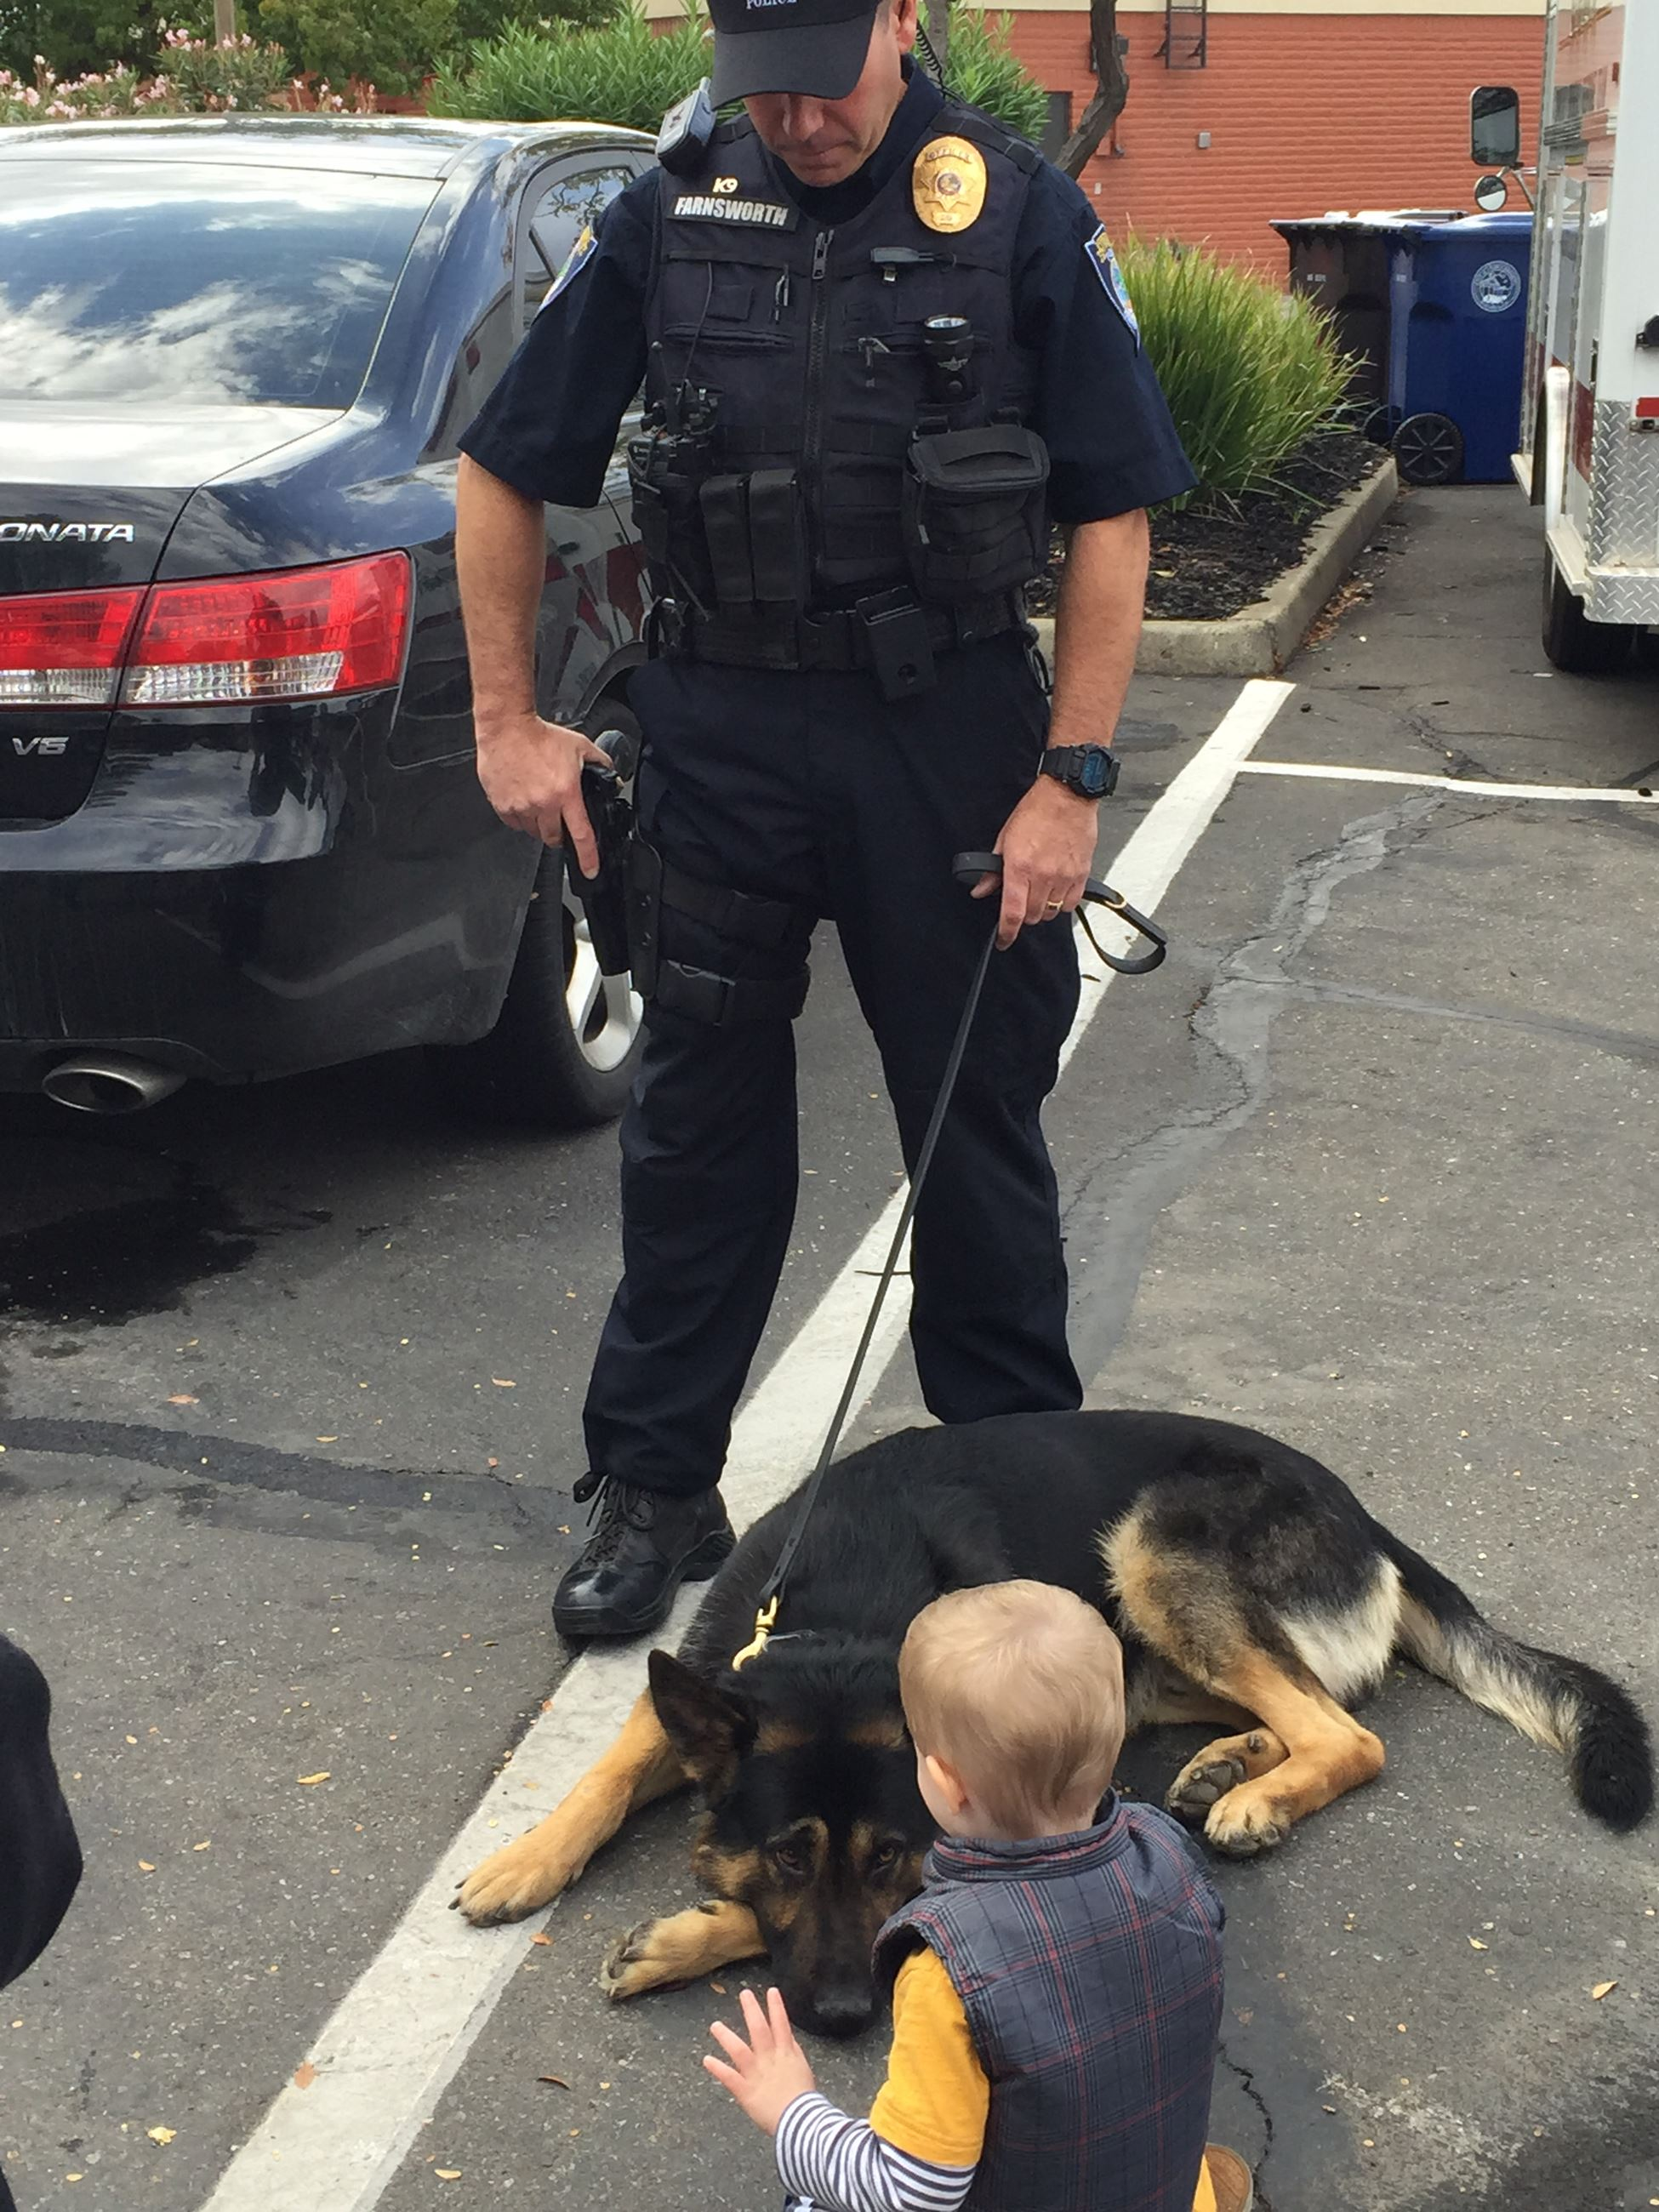 Bonding with a police dog